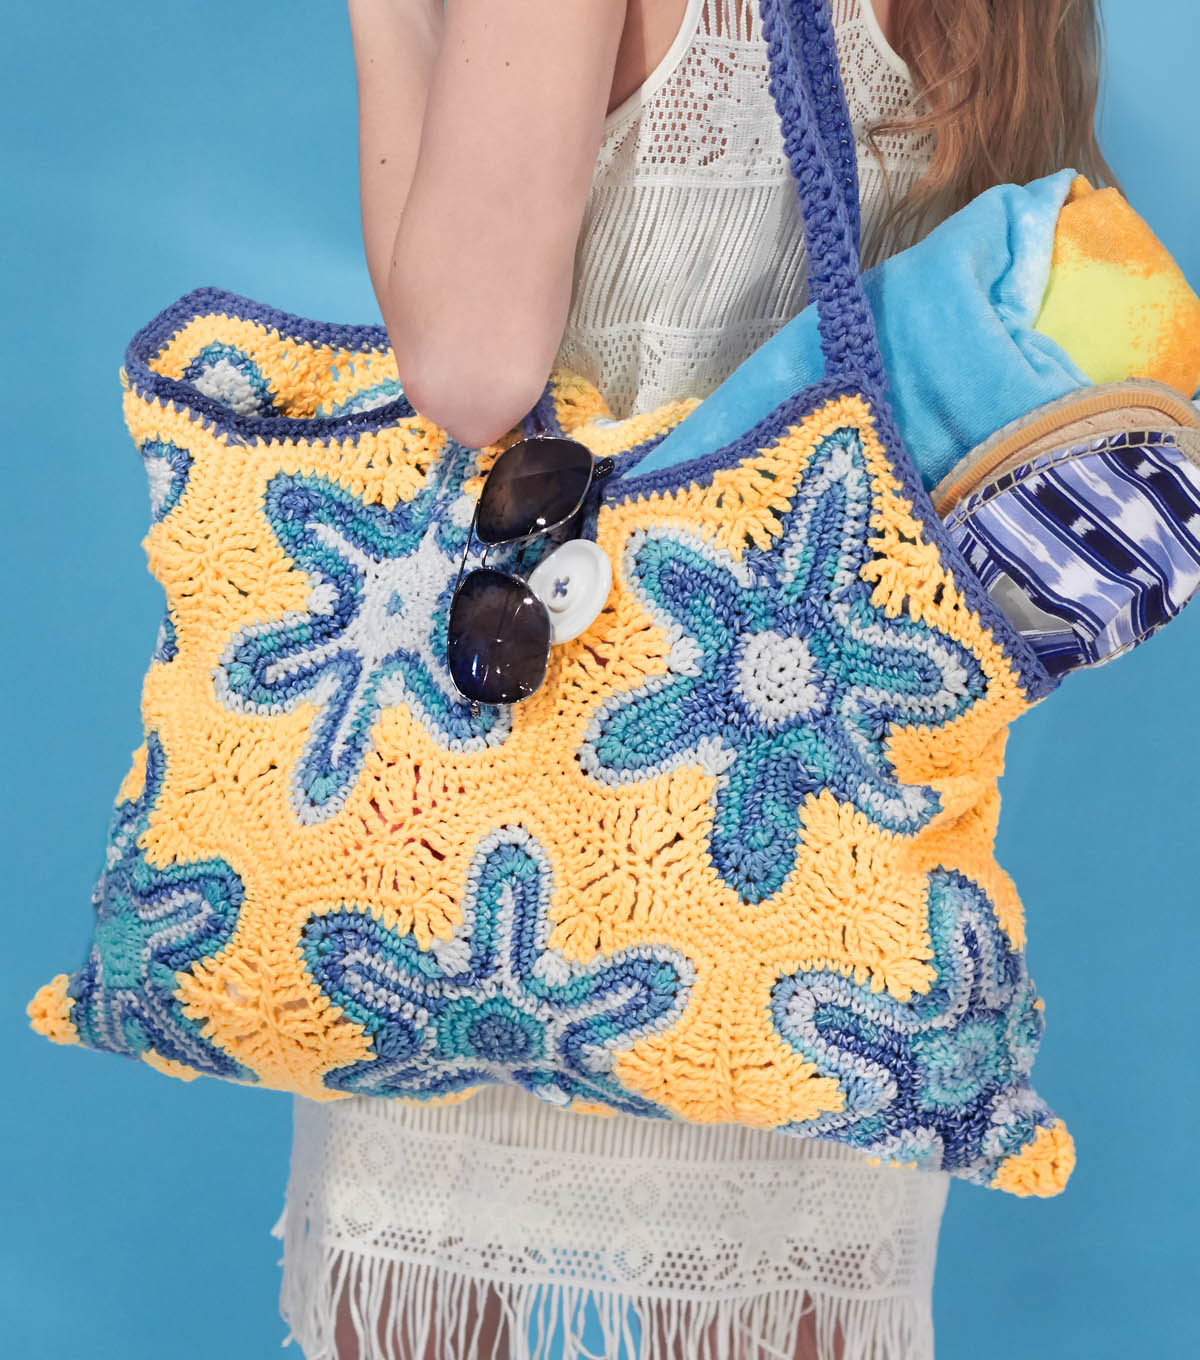 Crochet Patterns For Beach Bag : Free Crochet Patterns: Beach Bag, Crab and Shell